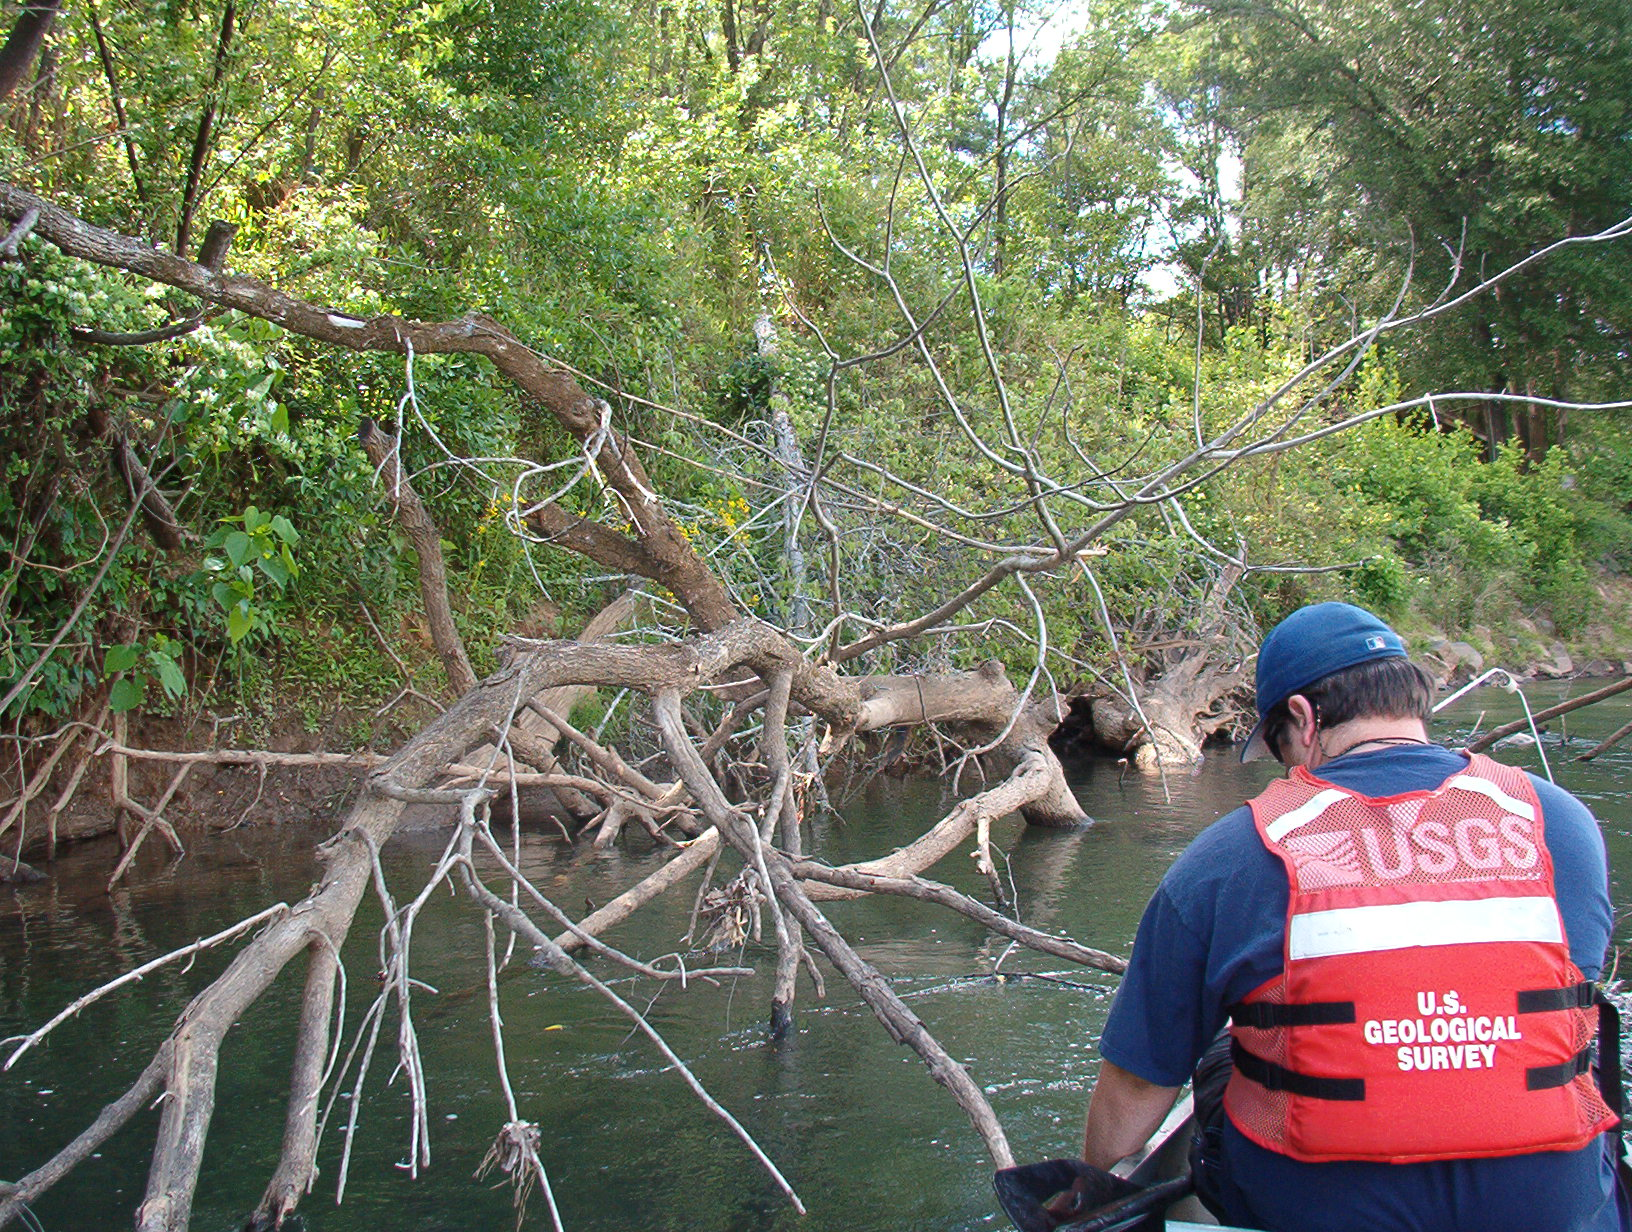 Tim Grabowski fixes the position of a radio-tagged robust redhorse in the Ocmulgee River, Georgia.